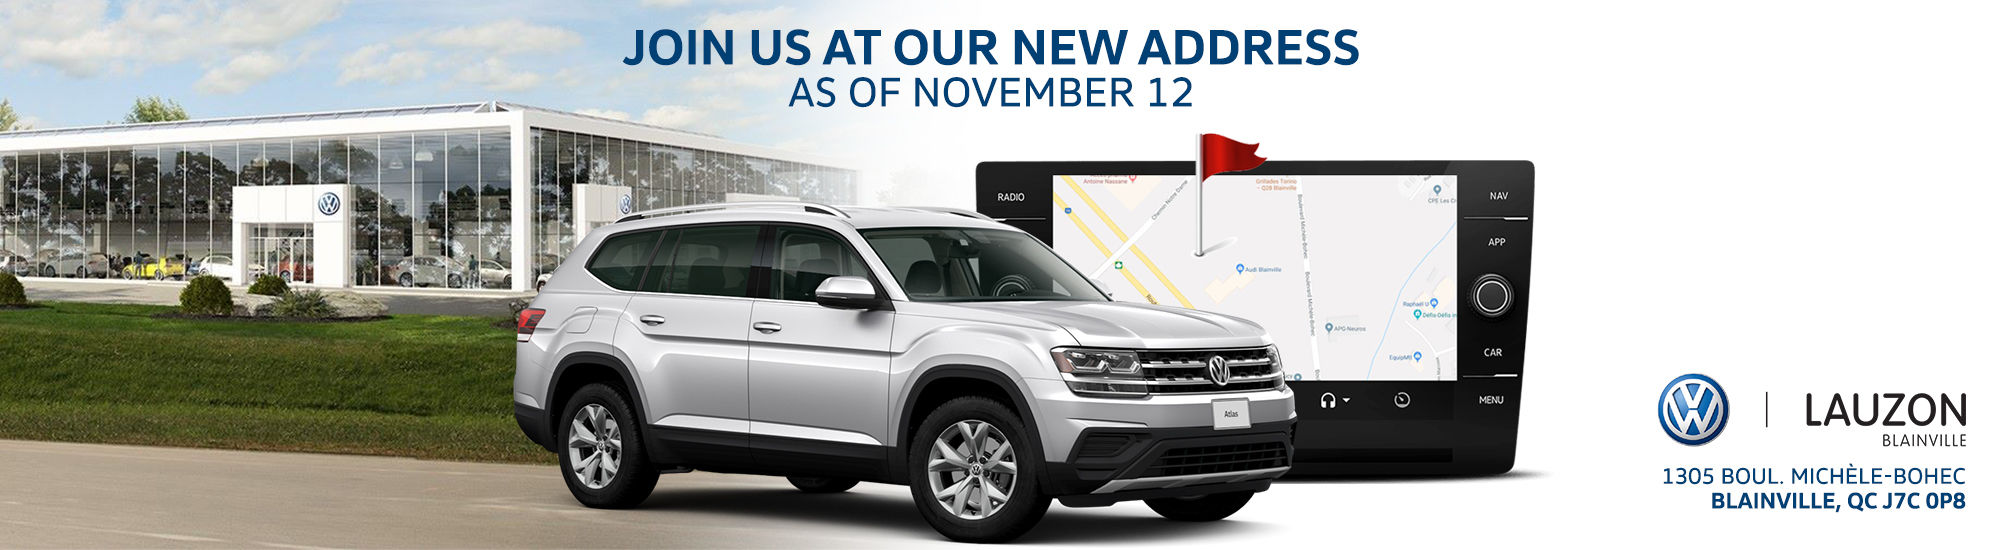 new vw blainville location